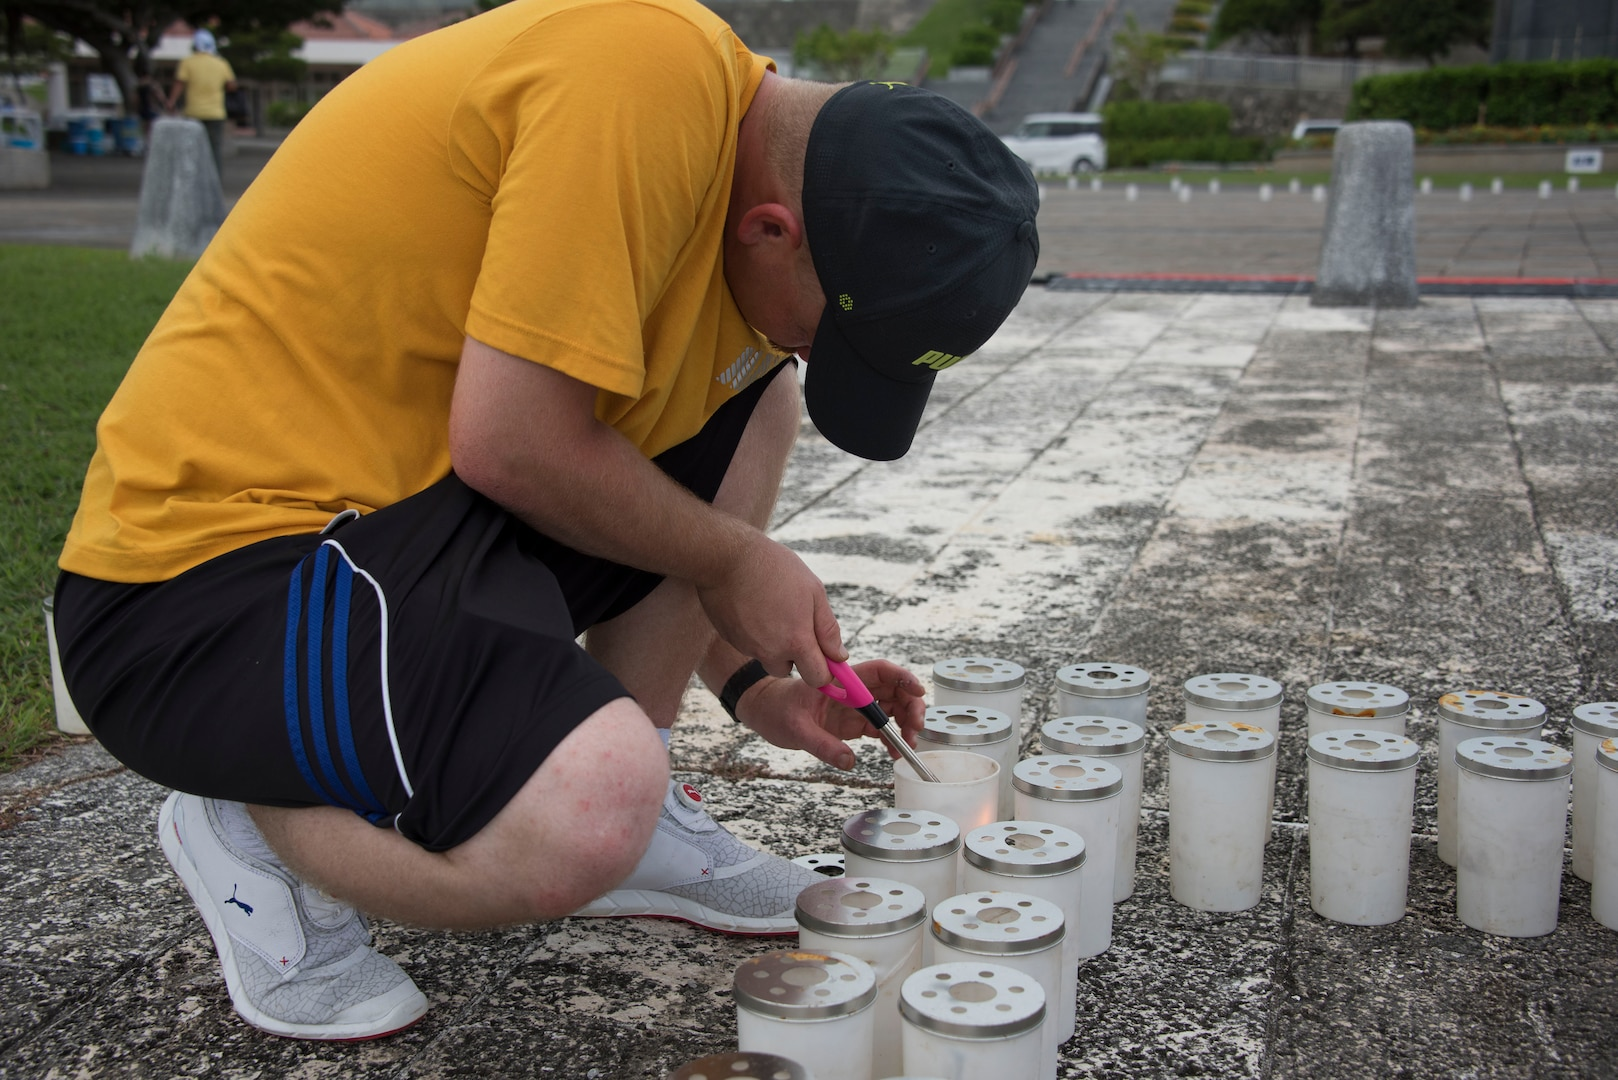 Aviation Electrician's Mate Chief Greg Brown, from Wilmington, N.C., assigned to Patrol Squadron (VP) 4, lights a candle at Okinawa Peace Memorial Park during the Lamplight of Peace event. More than 30 U.S. Navy volunteers carefully placed thousands of ceremonial candles at the park in Itoman City, June 22, to honor the more than 250,000 Japanese and American lives lost during the Battle of Okinawa, the third deadliest battle ever fought by U.S. service members.